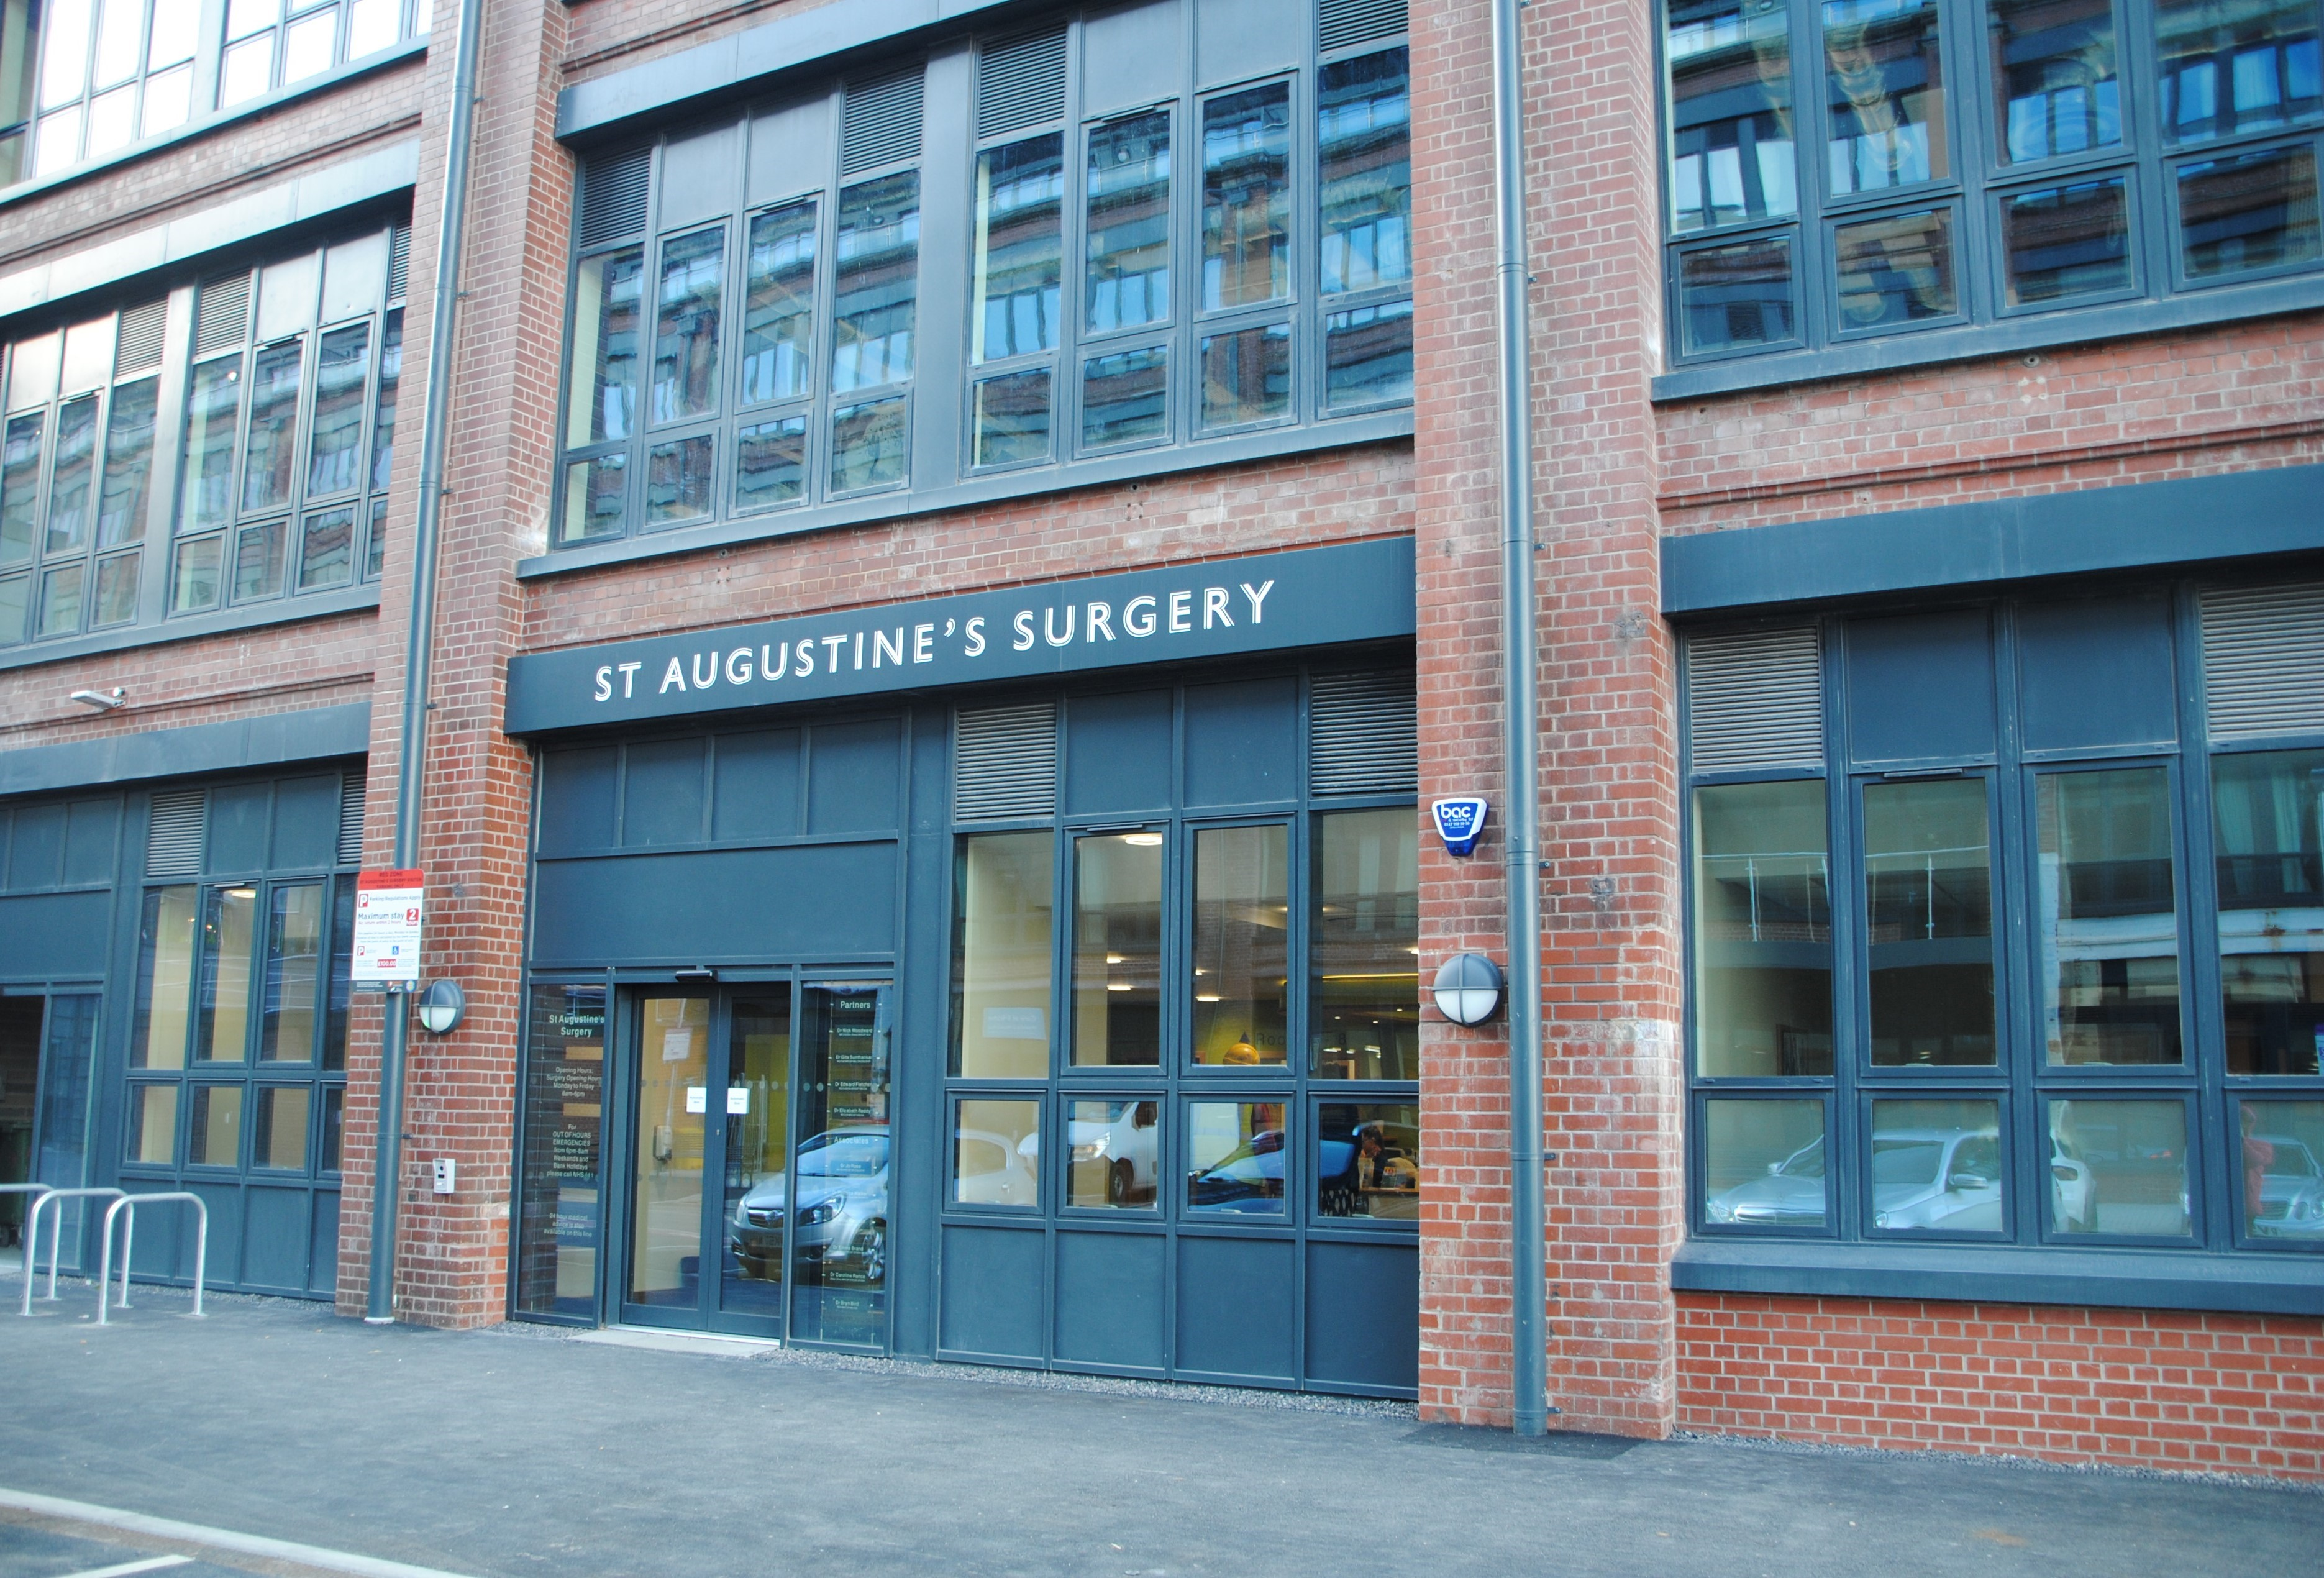 Thrings moves further into primary care property with Chocolate Quarter surgery relocation